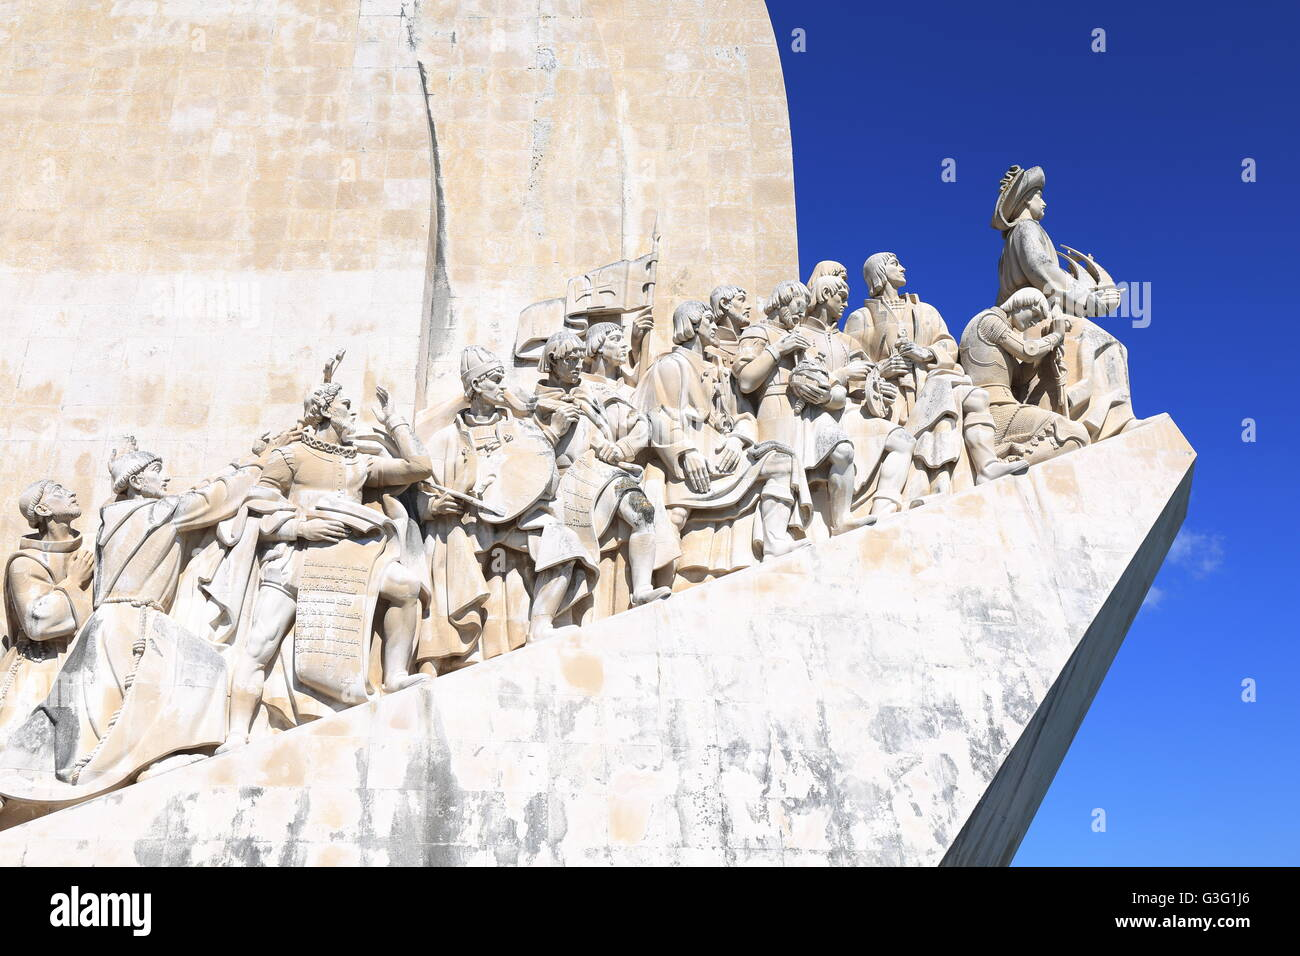 Discoveries Monument on the banks of Portugal's River Tagus at Belem, Lisbon. - Stock Image